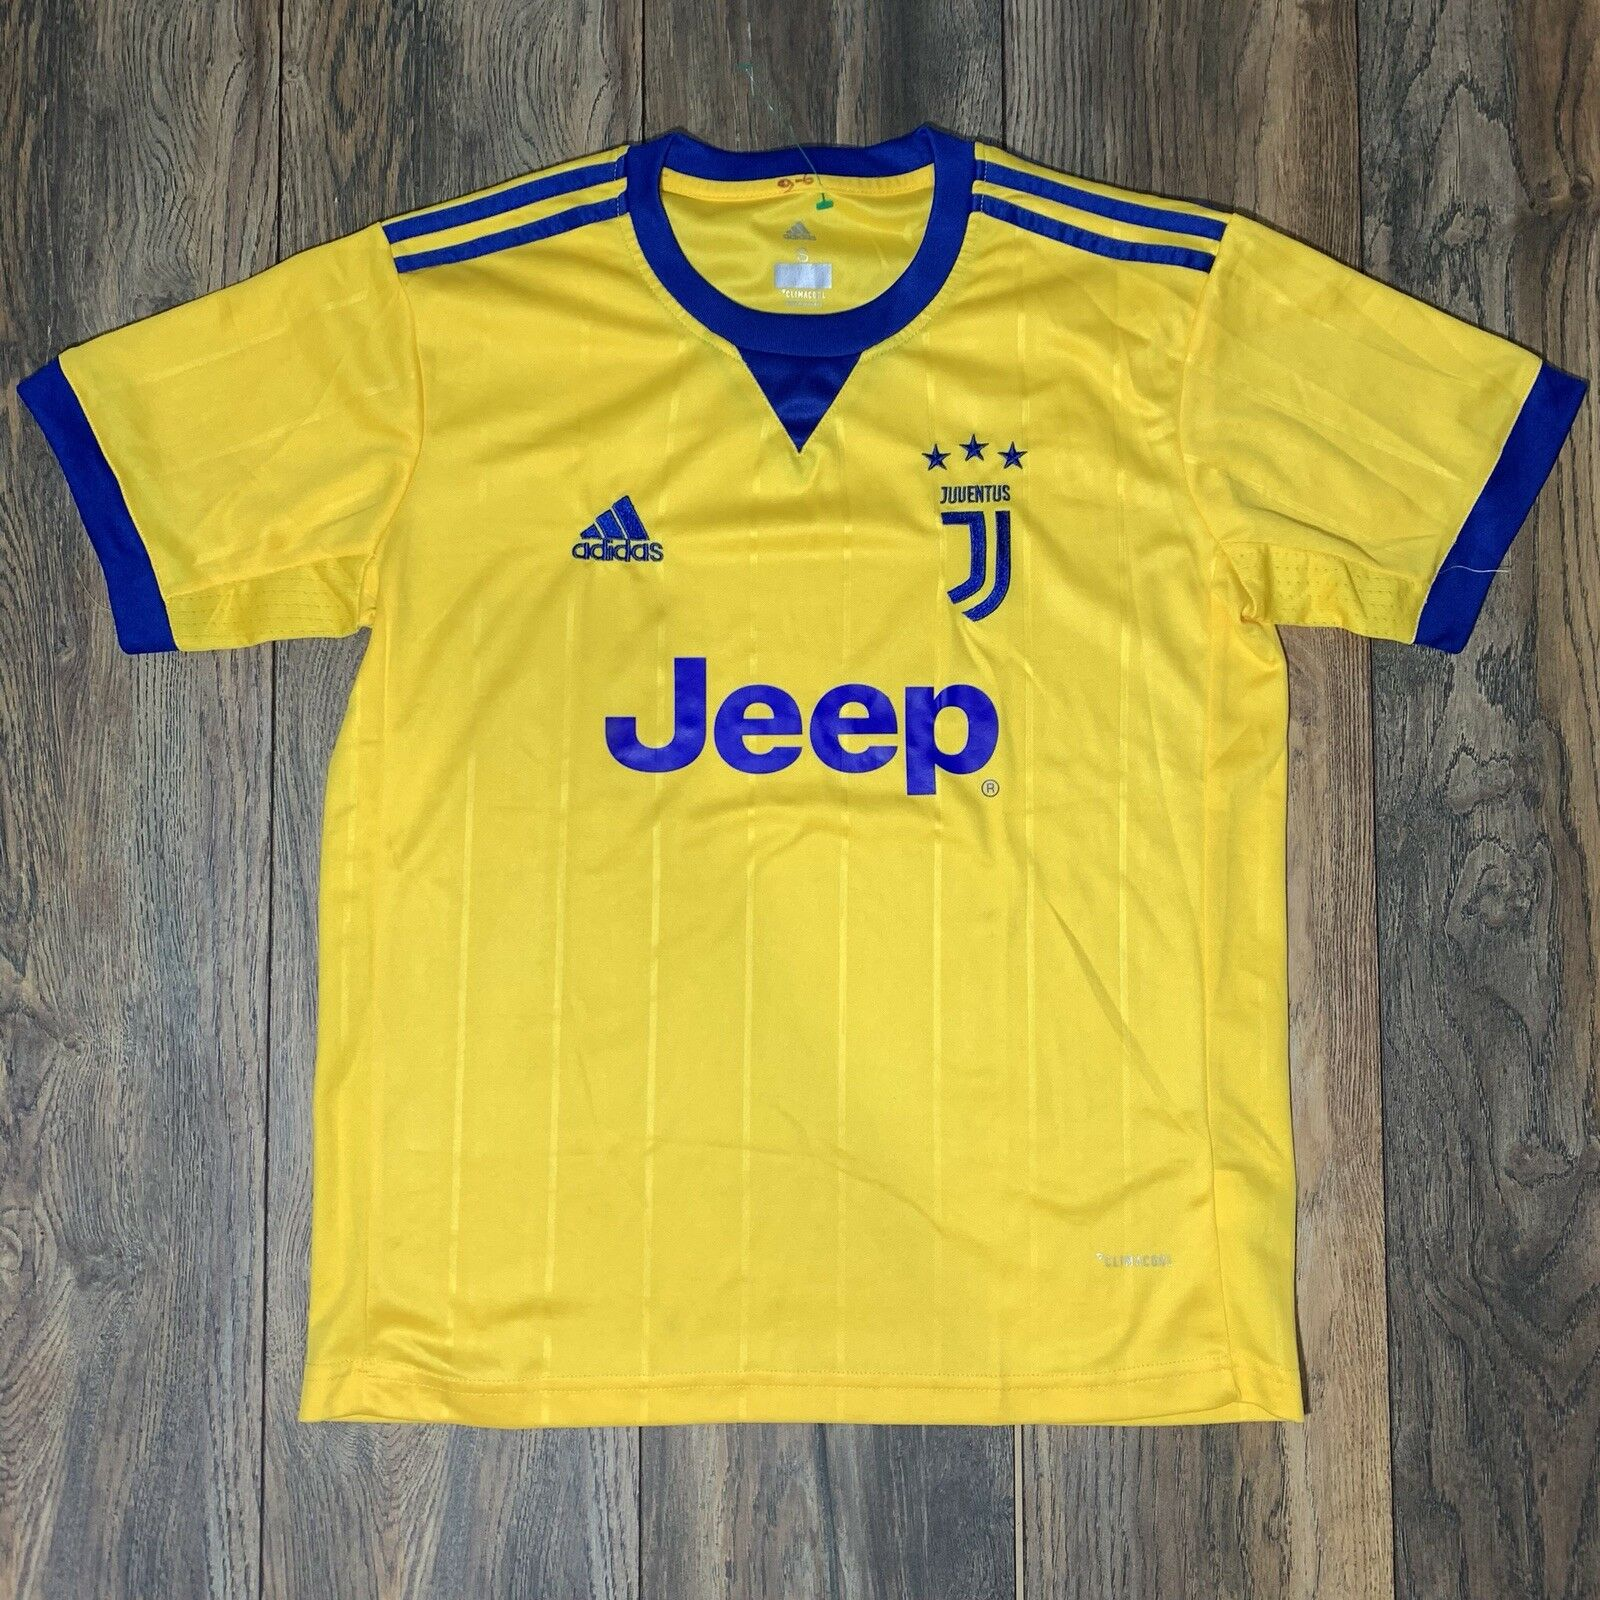 Auth Adidas 17-18 Juventus Soccer Away Yellow Jersey Football Club Size  Small 9f4a36083